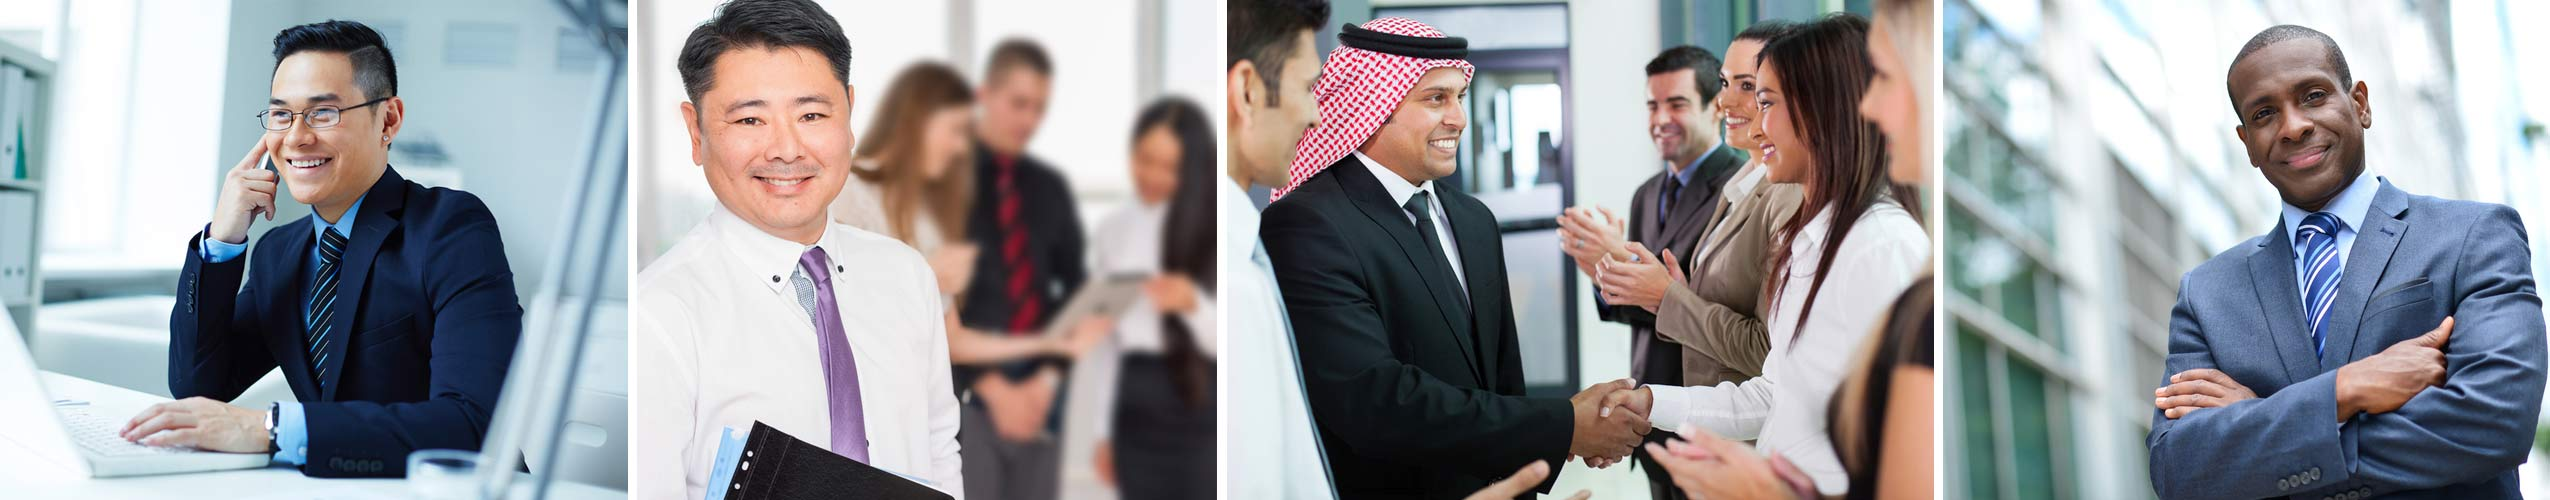 Business professionals from various cultural backgrounds